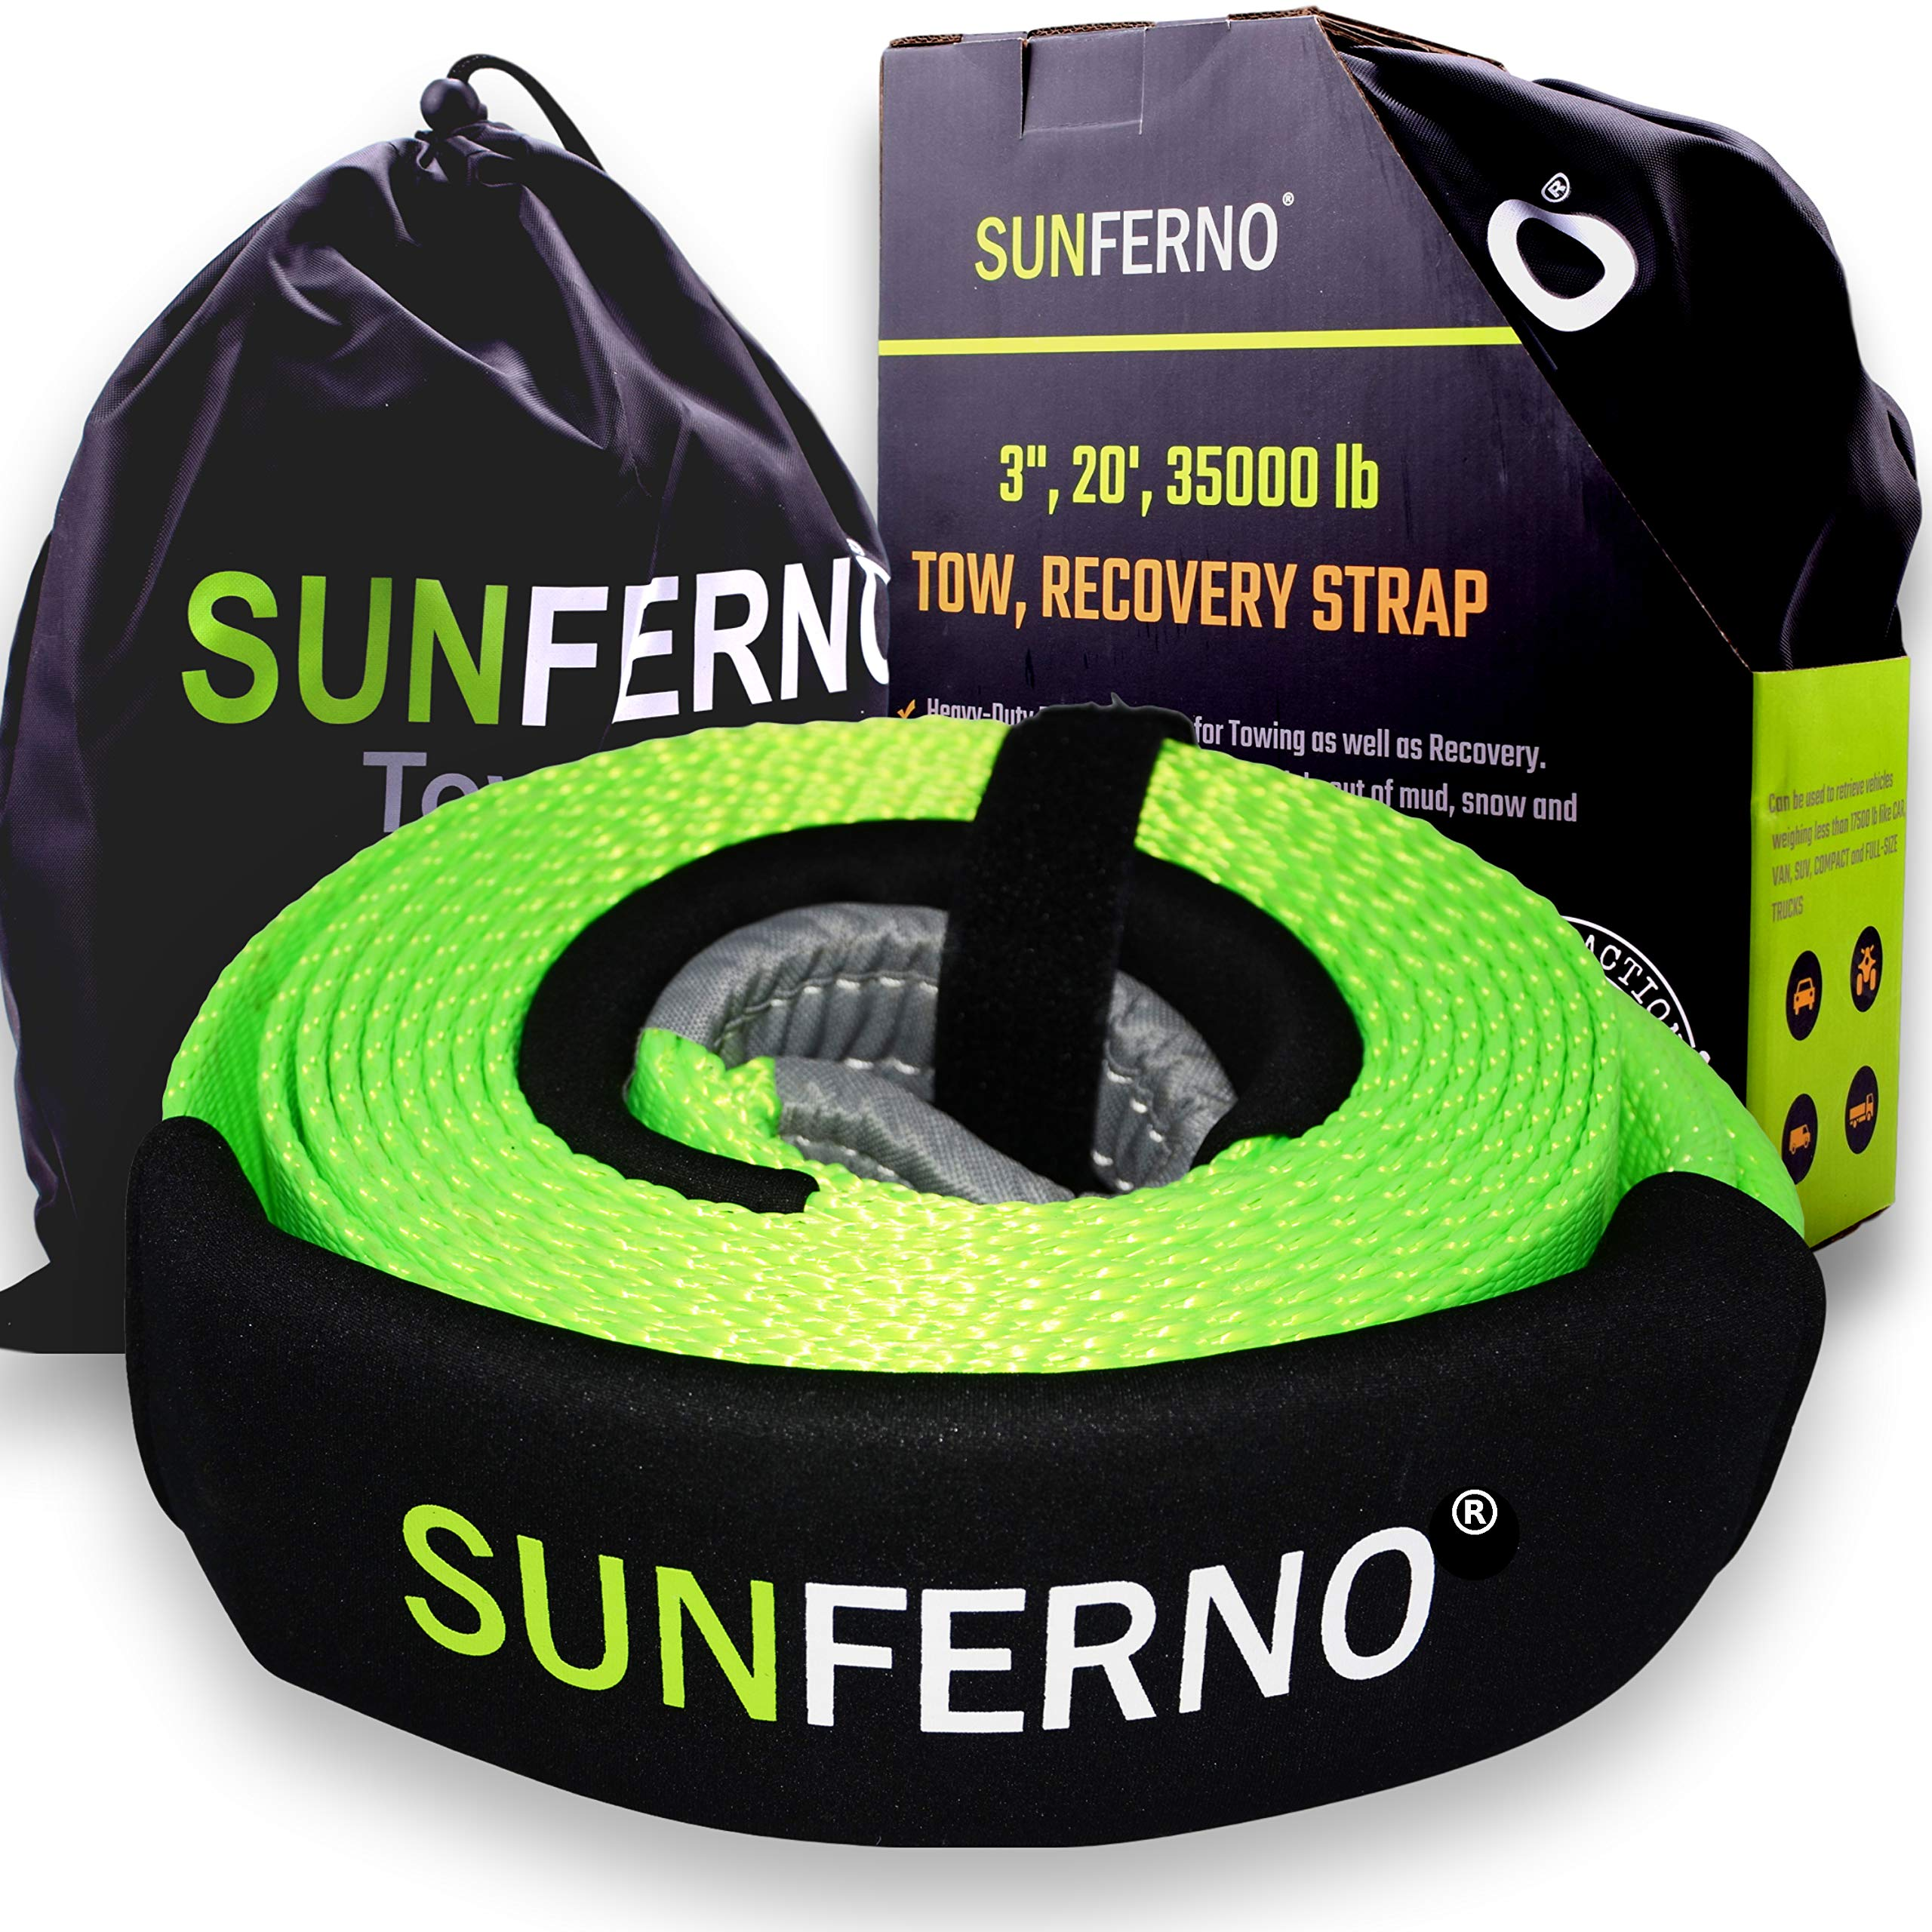 """Sunferno Recovery Tow Strap 35000lb - Recover Your Vehicle Stuck in Mud/Snow - Heavy Duty 3"""" x 20' Winch Snatch Strap - Protective Loops, Water-Resistant - Off Road Truck Accessory - Bonus Storage Bag"""